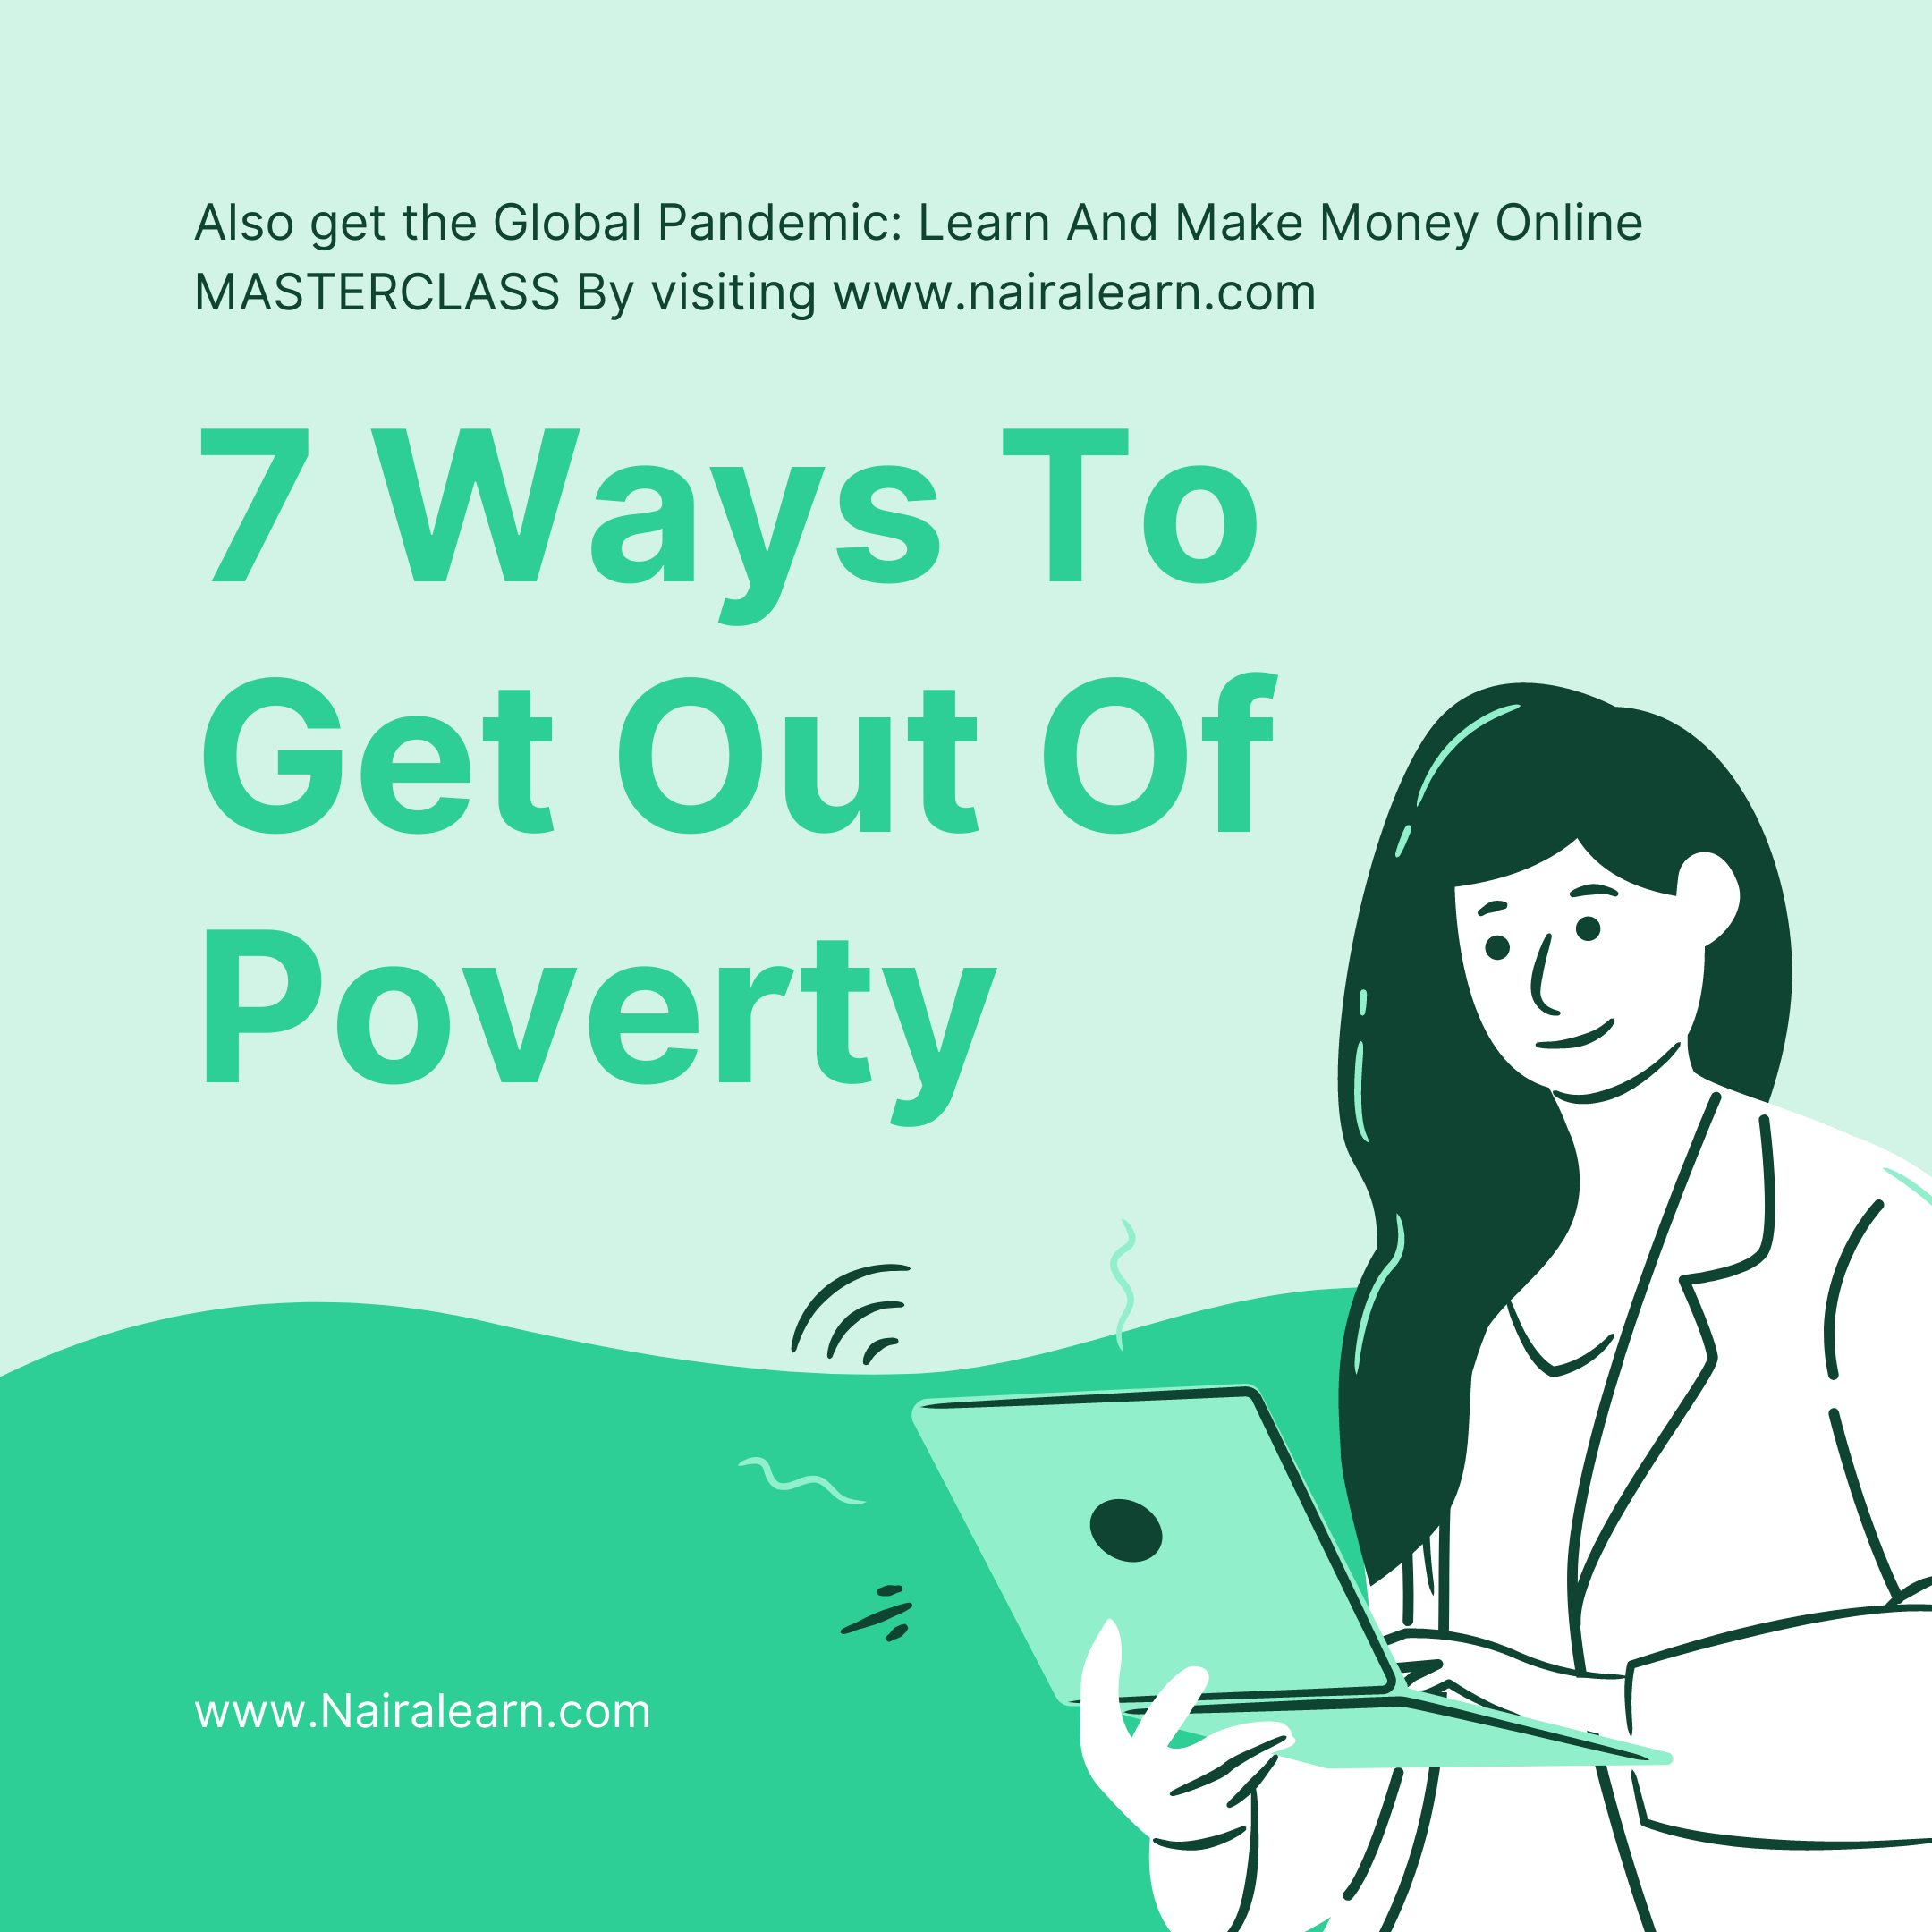 7 Ways To Get Out Of Poverty